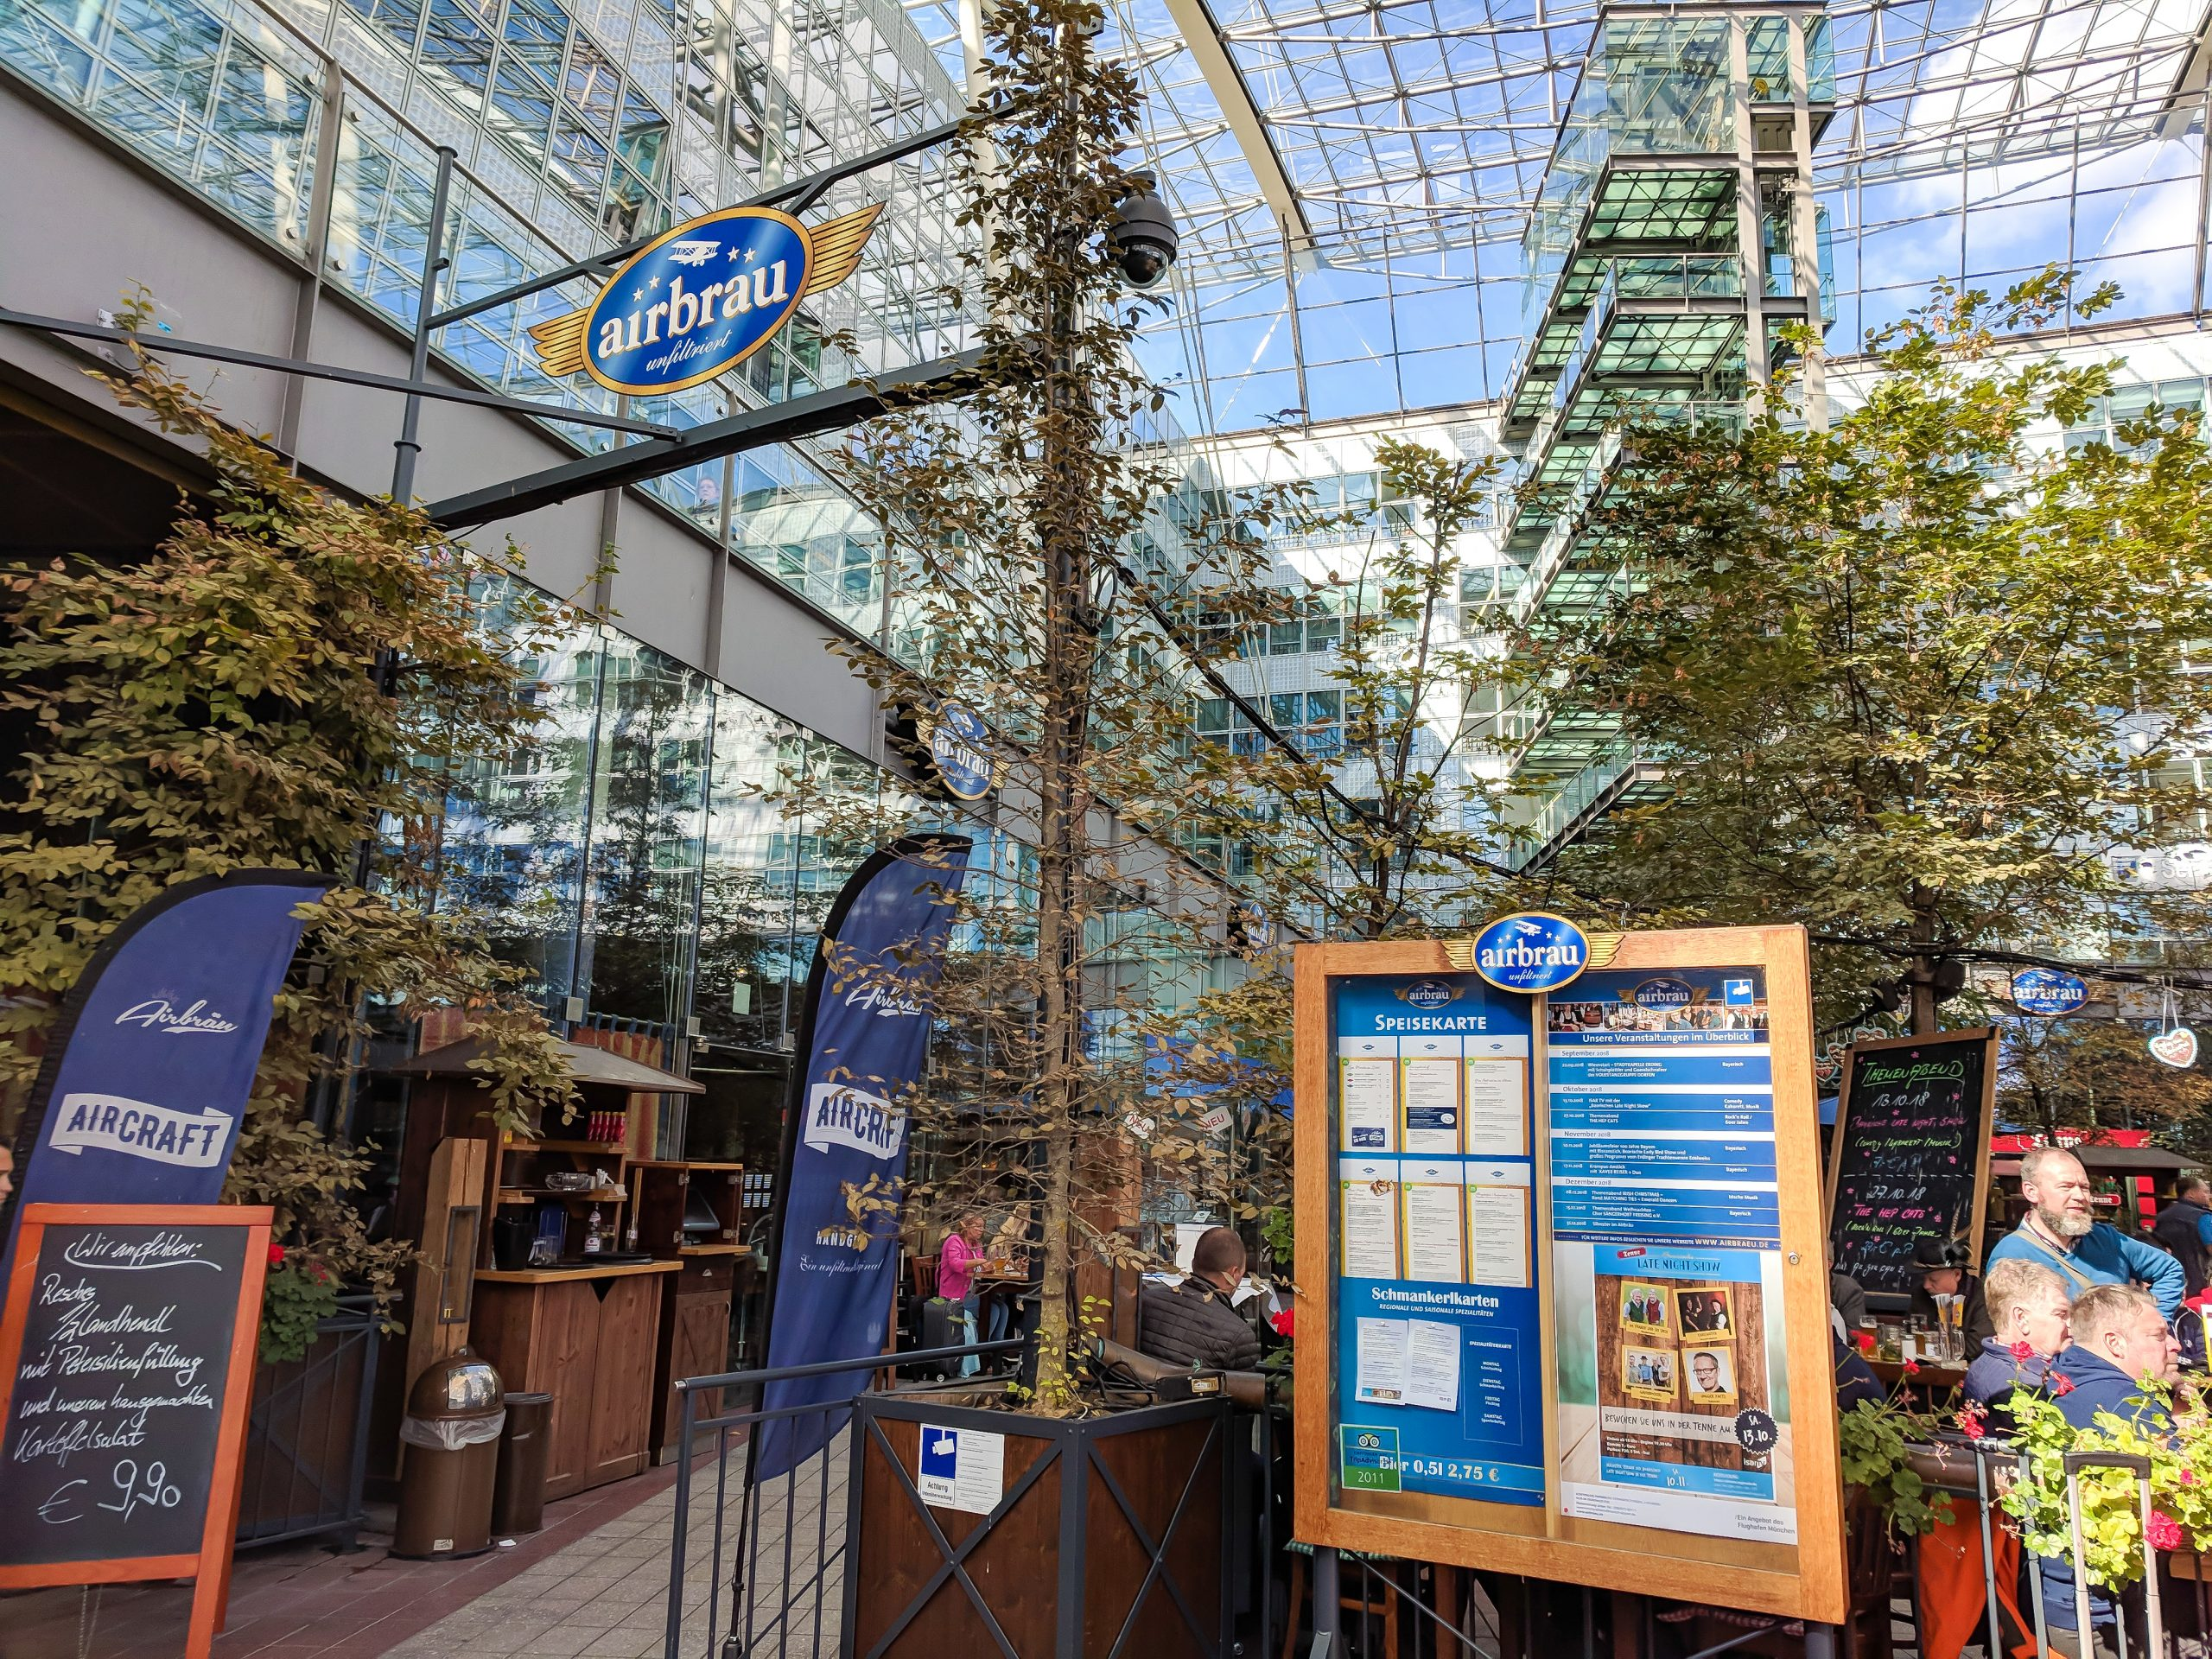 All About Airbrau The Munich Airport Brewery You Shouldn T Roll Past